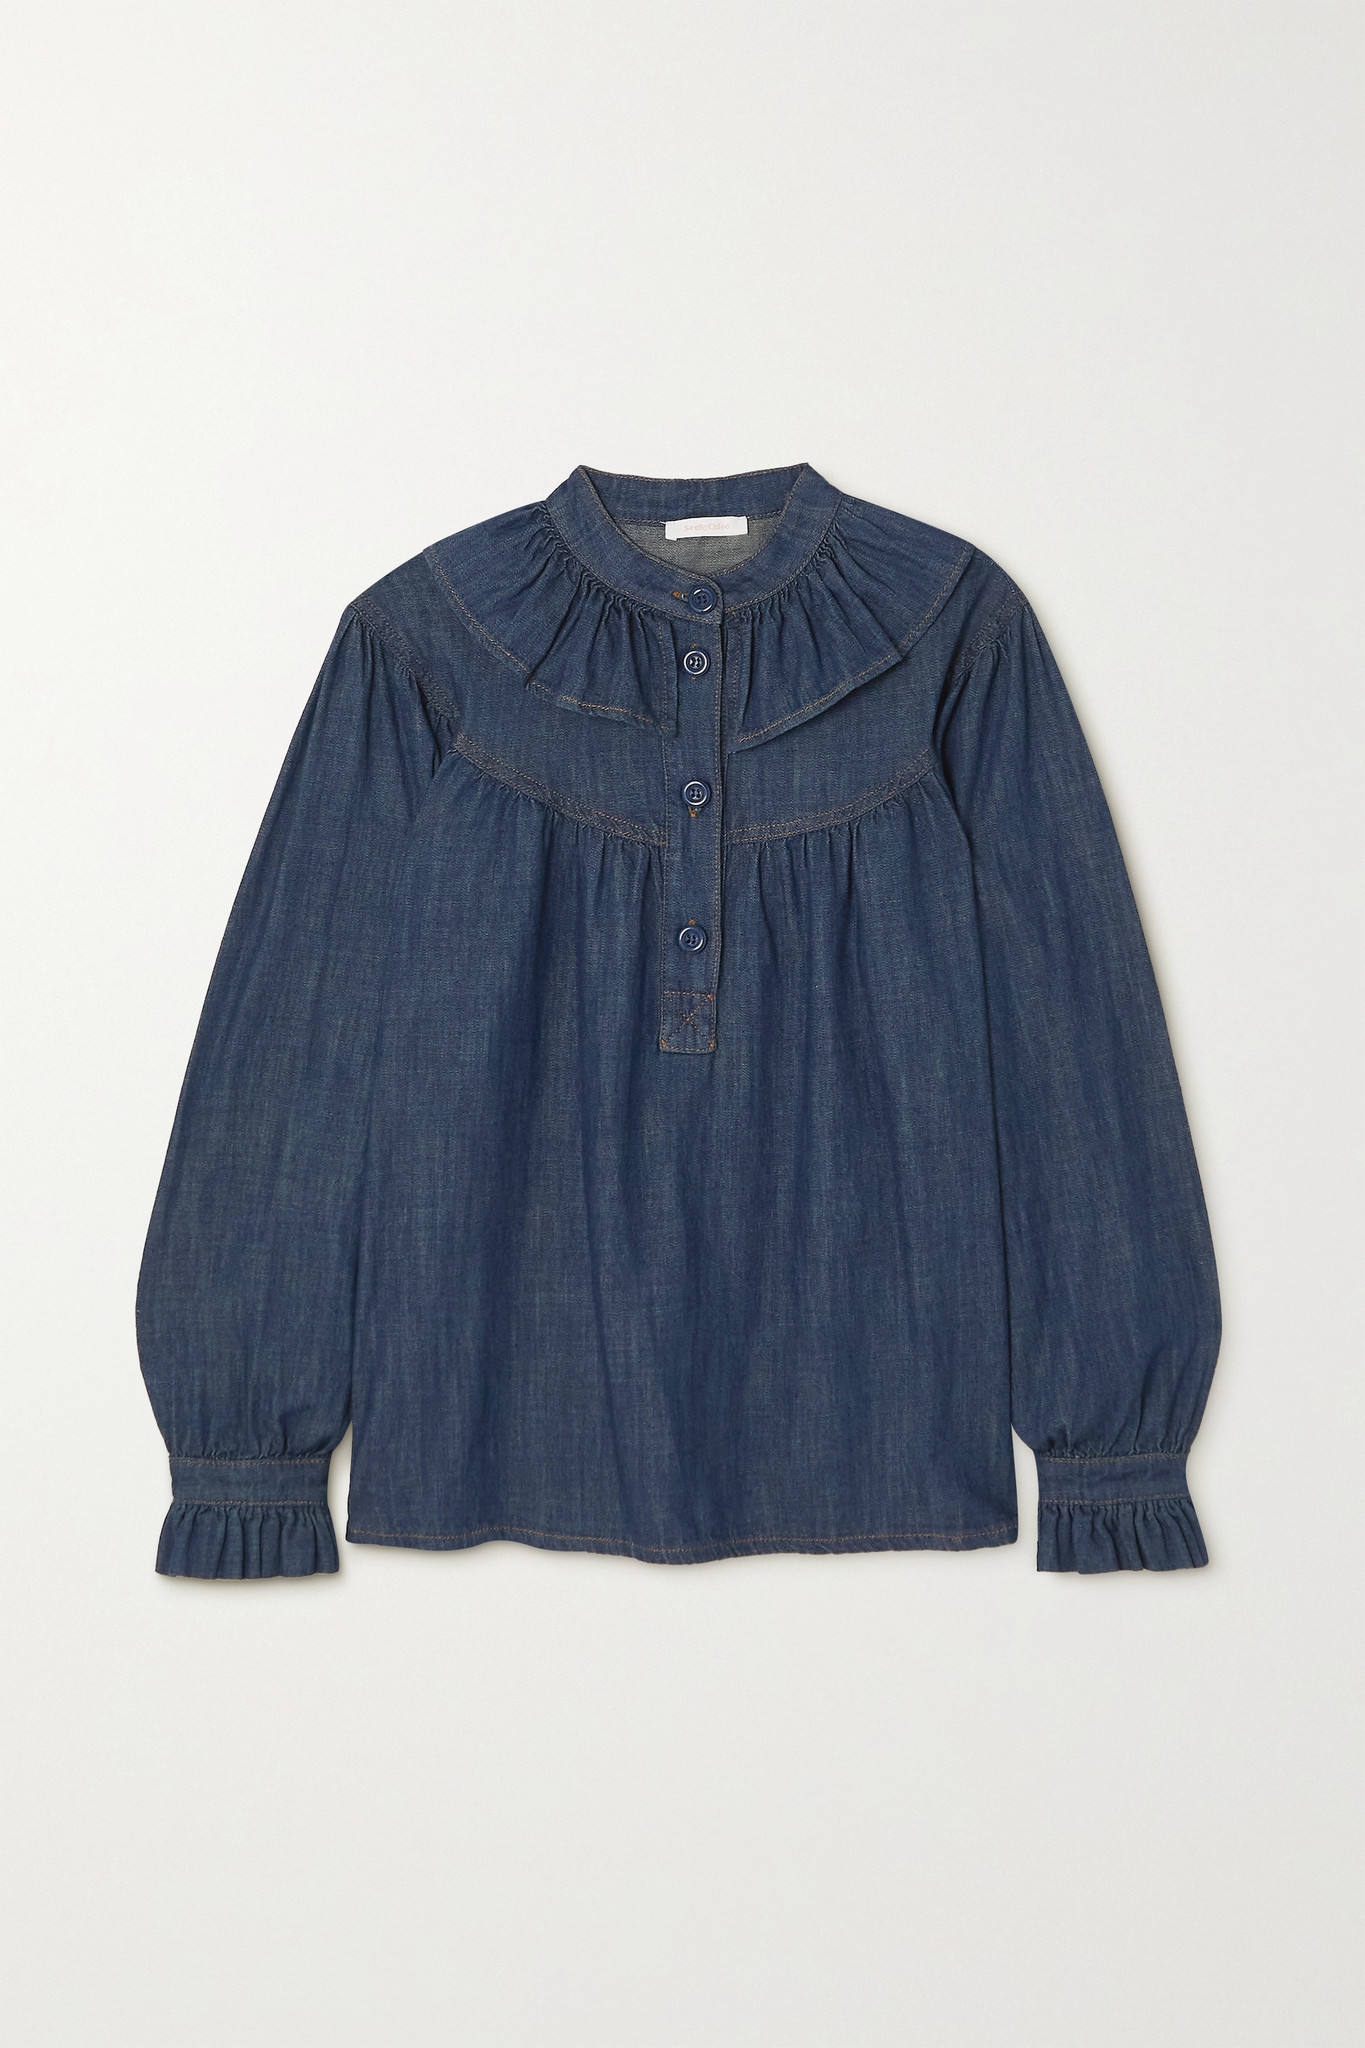 SEE BY CHLOÉ - Ruffled Denim Blouse - Blue - FR36